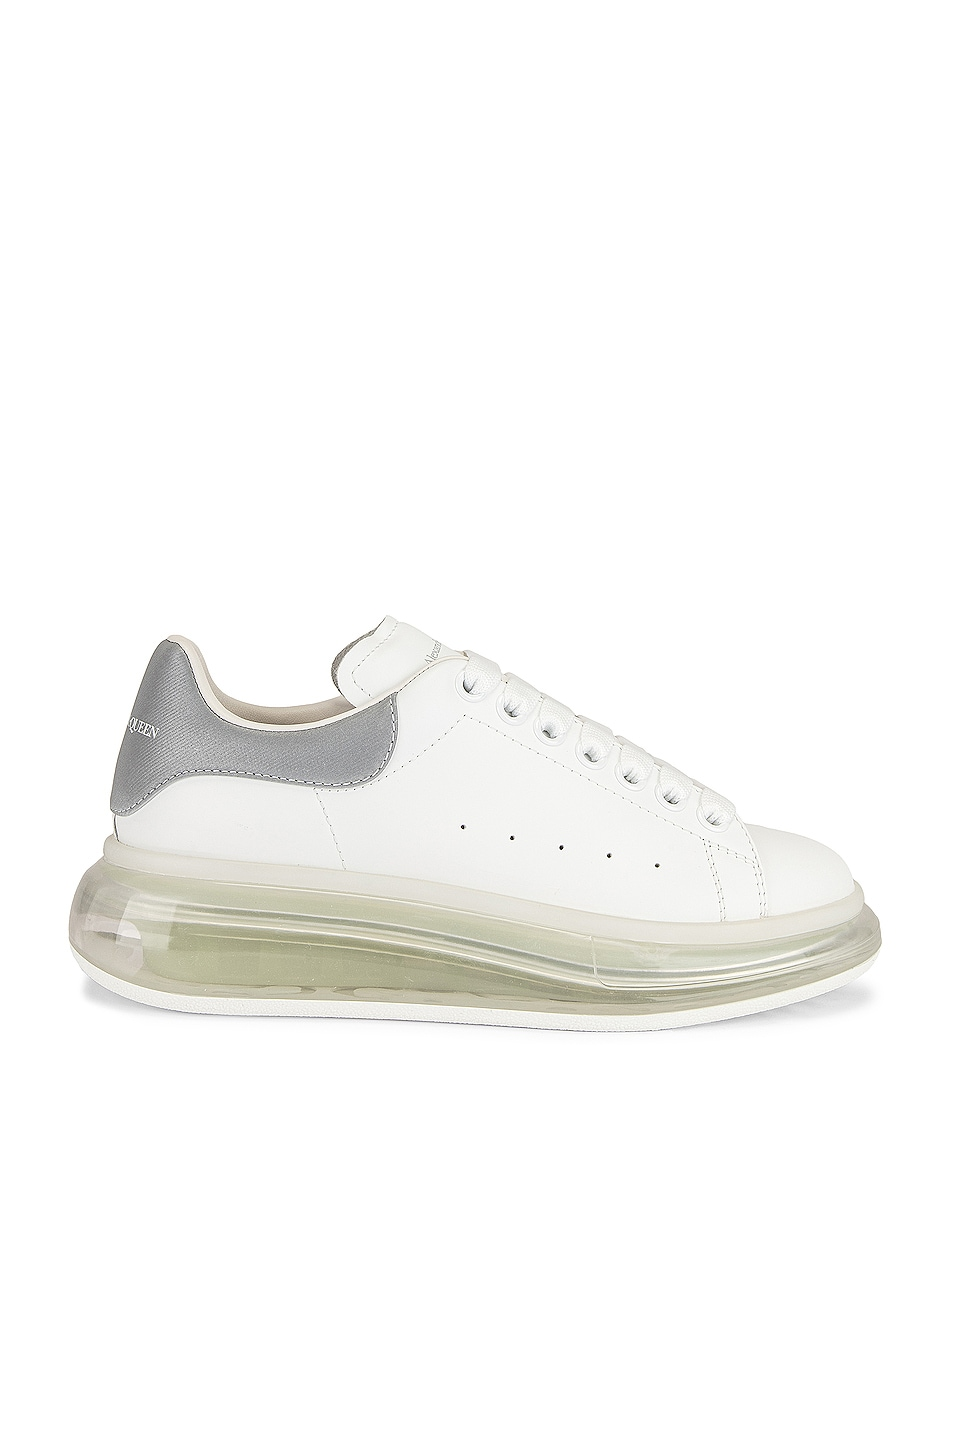 Image 1 of Alexander McQueen Lace Up Sneakers in White & Silver & Transparent